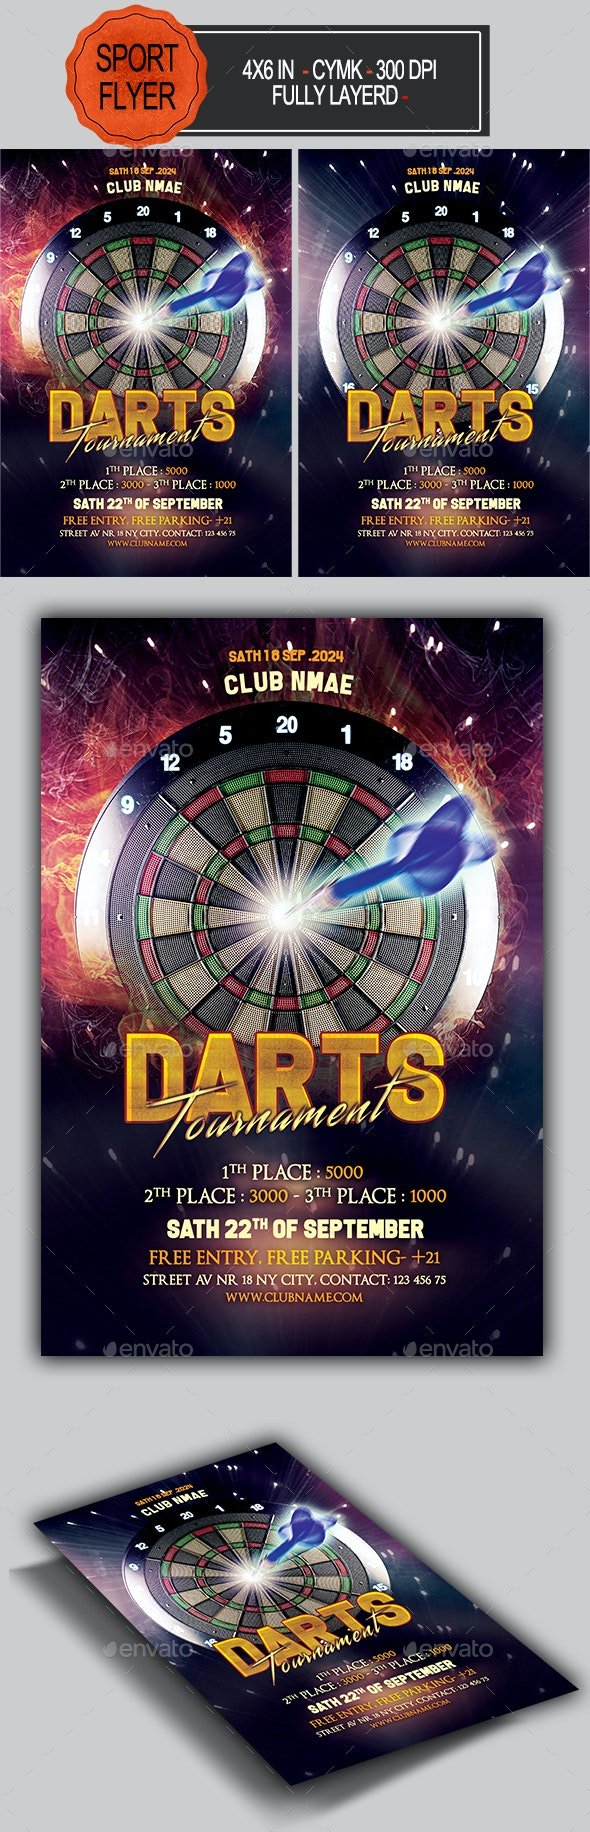 Darts Night Flyer Template - Sports Events